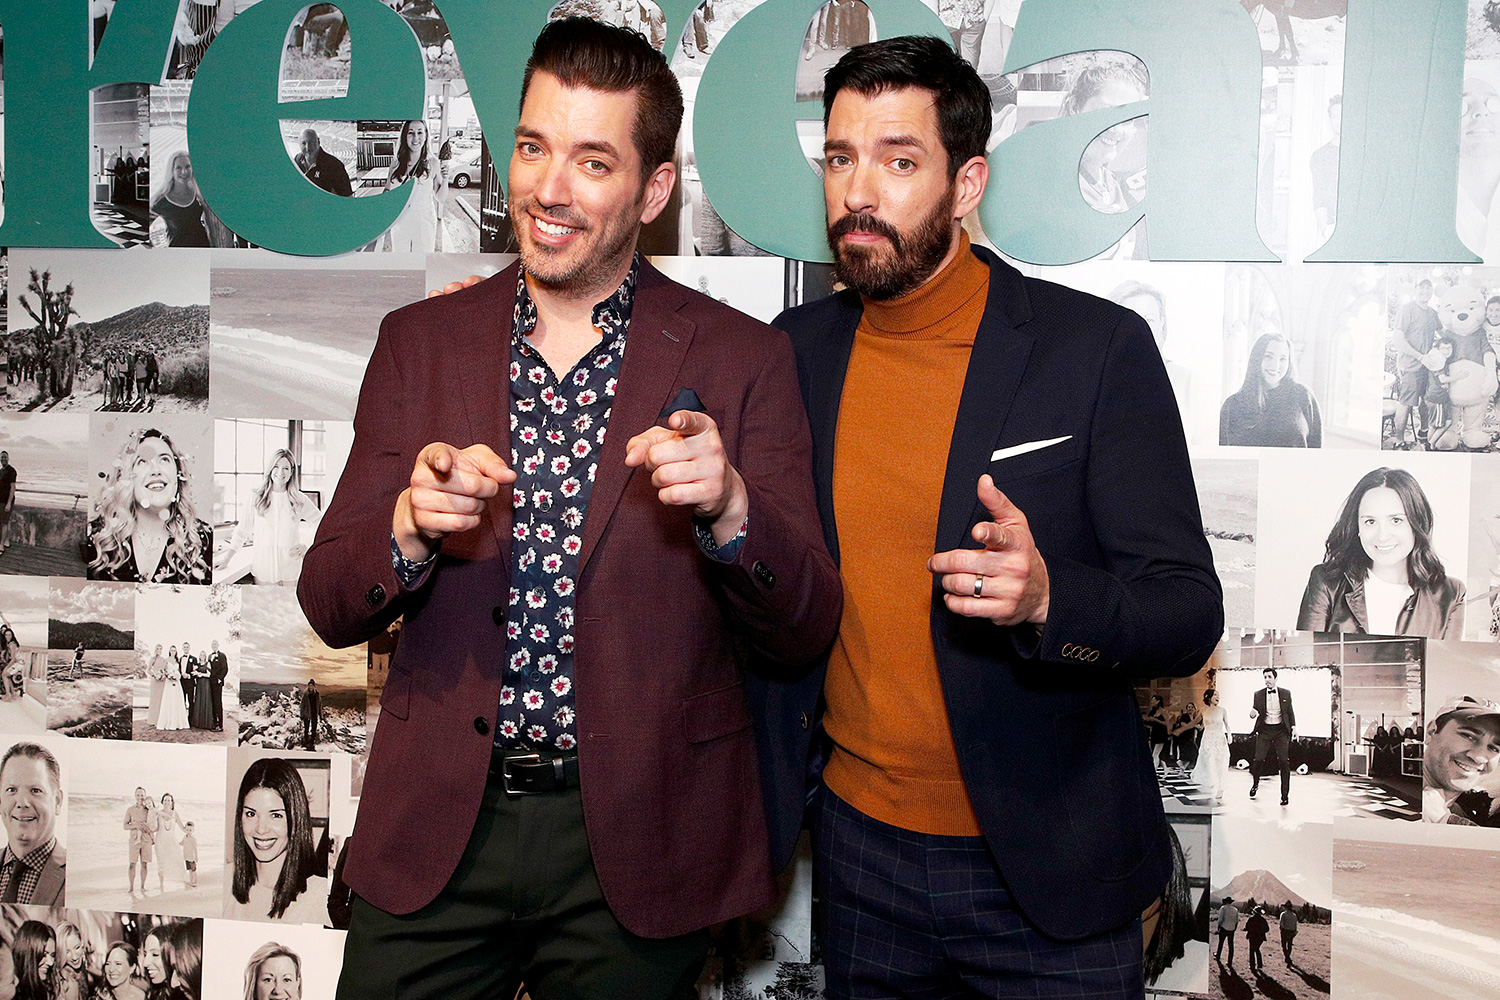 Jonathan Scott and Drew Scott celebrate the premier Issue of New Meredith Corporation's lifestyle publication Reveal at Meredith, INC on January 09, 2020 in New York City